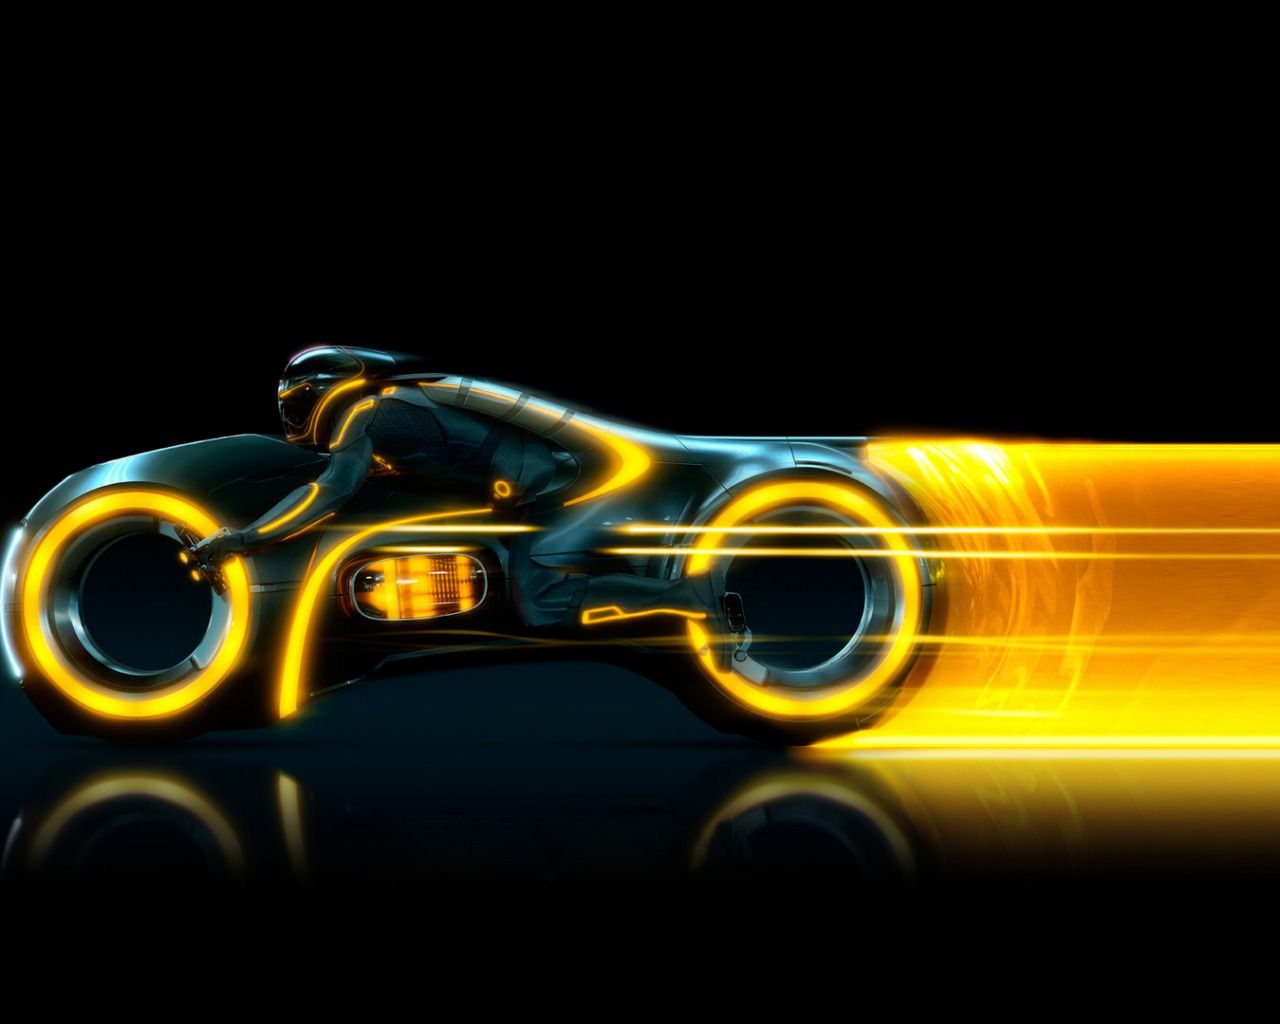 Pin By Bonnie Carnahan On Motor Vehicle Collections Tron Legacy Tron Tron Light Cycle